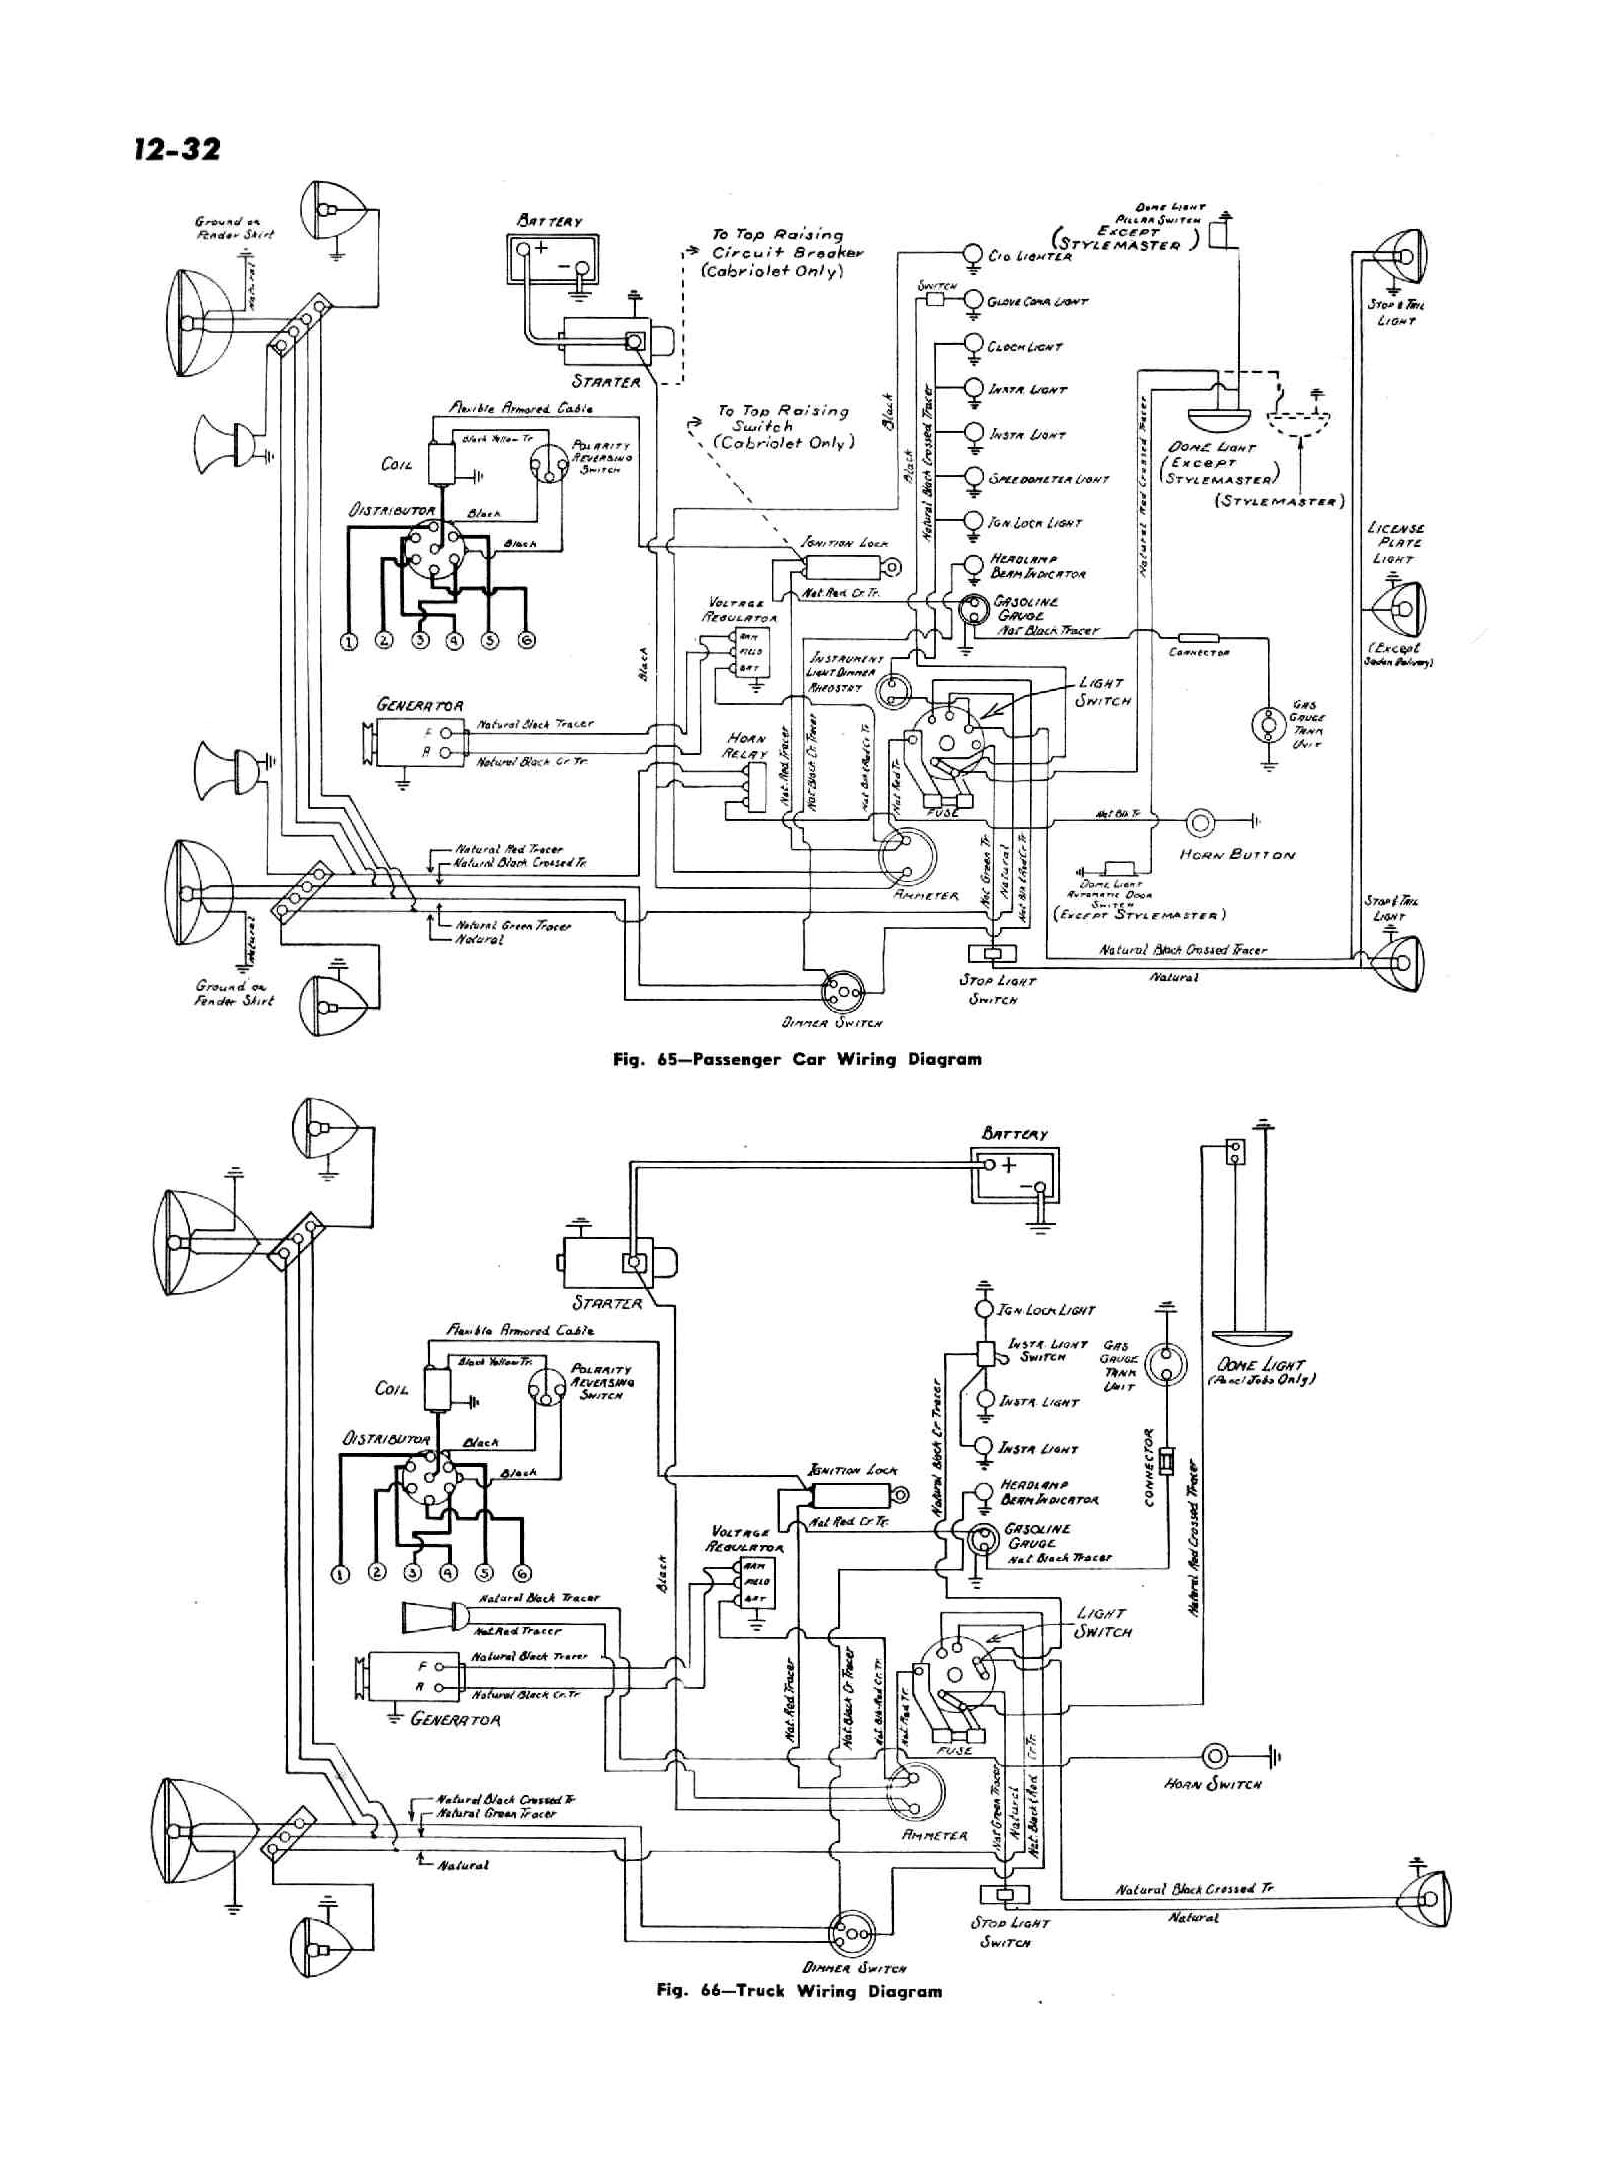 chevy wiring diagrams Chevy LS 1947 passenger car truck wiring